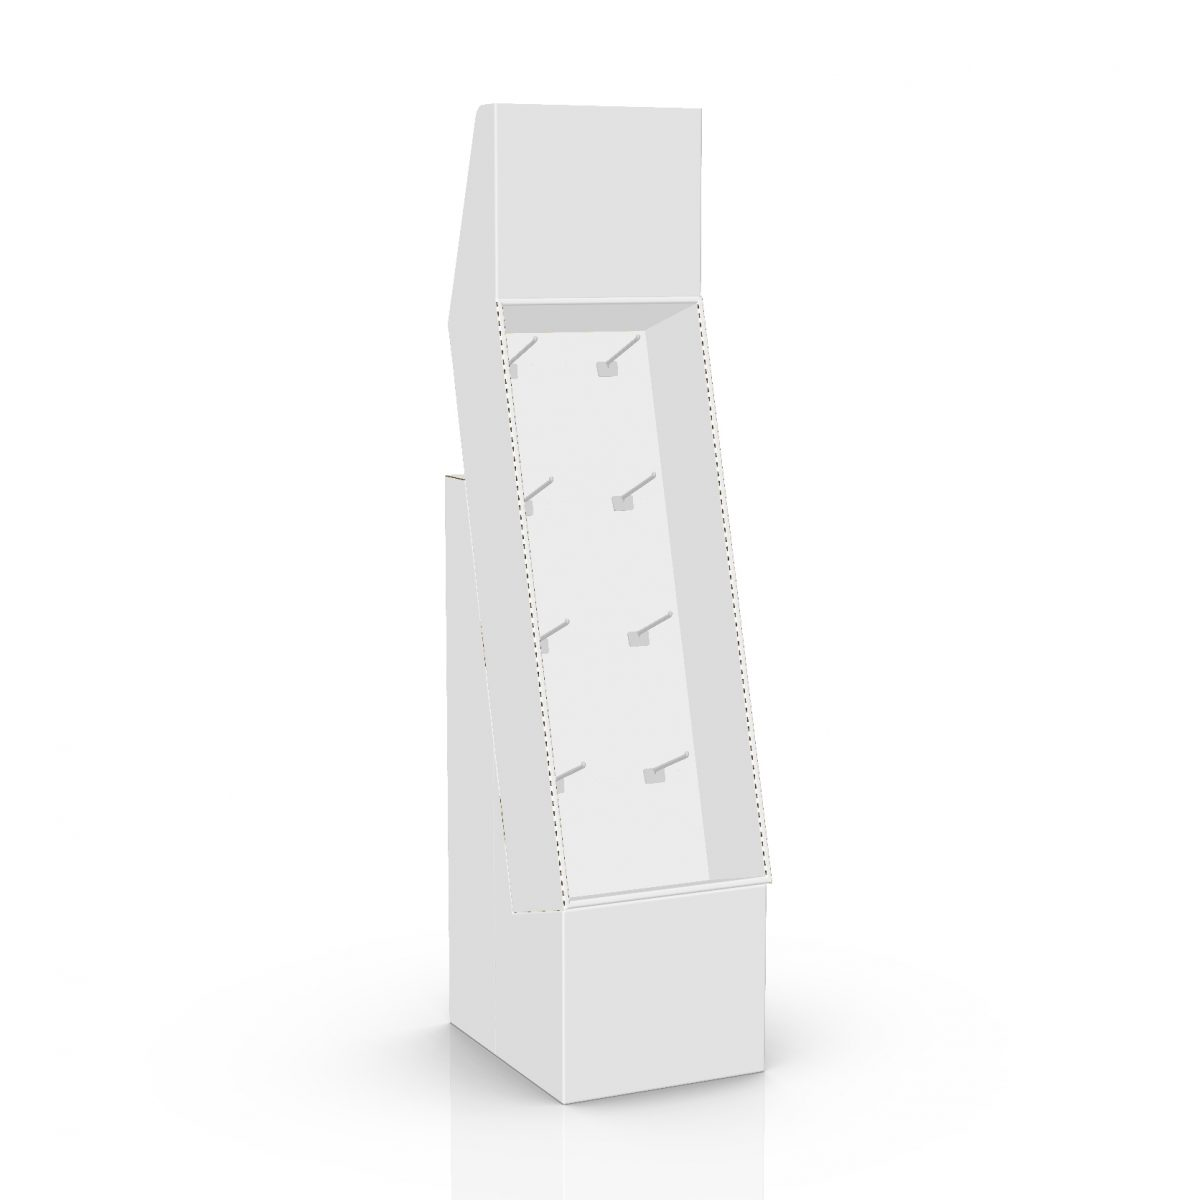 Cardboard floor peg display with header, placed on a base - 3d